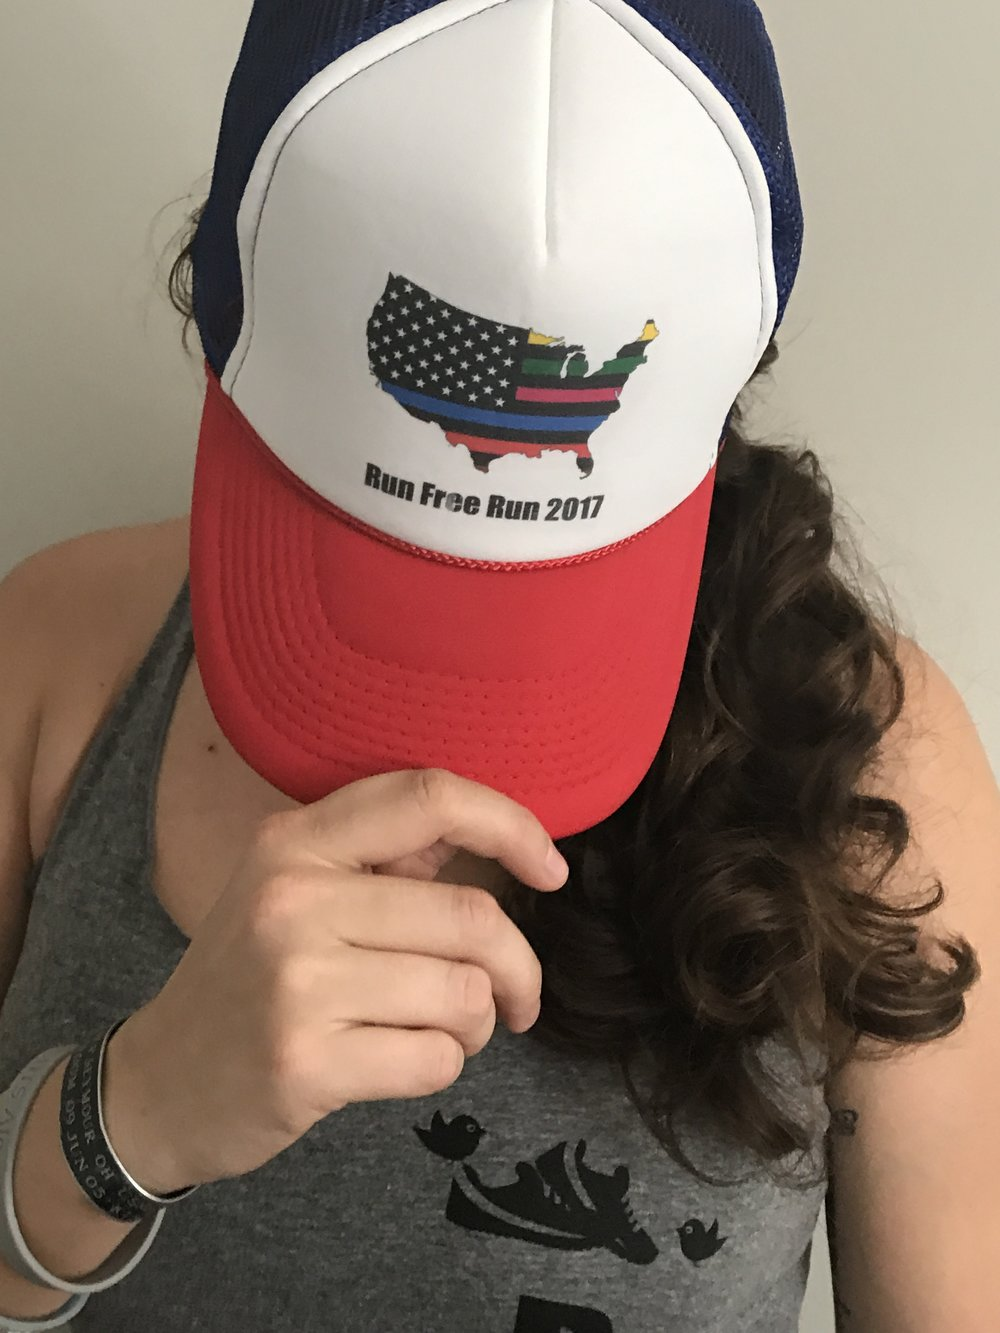 RWB Run Free USA Hat $15